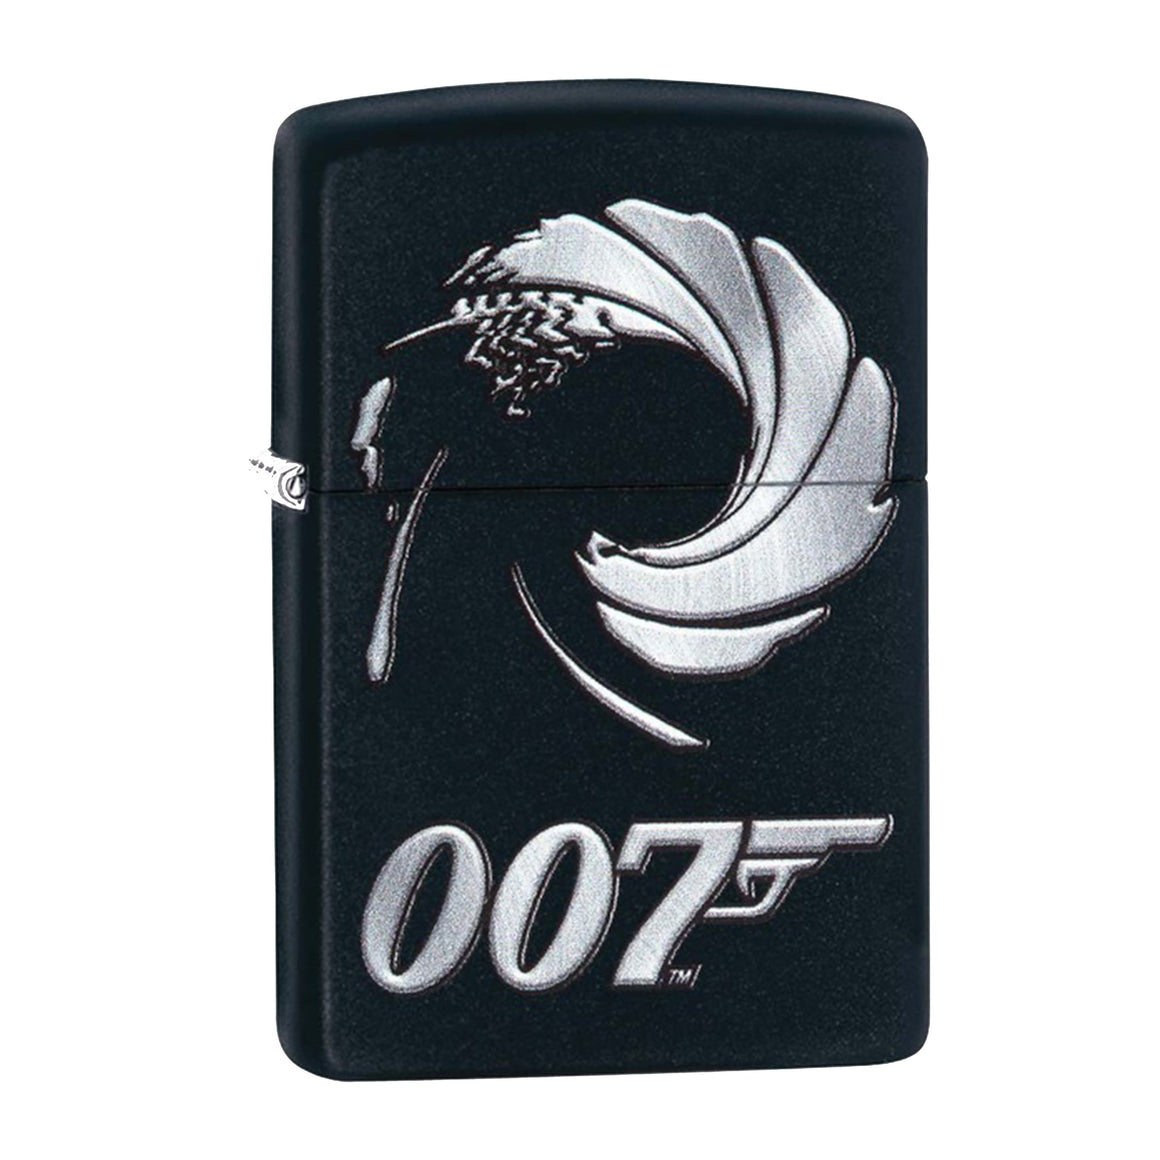 James Bond Zippo Lighter (Gun Barrel) - 007STORE